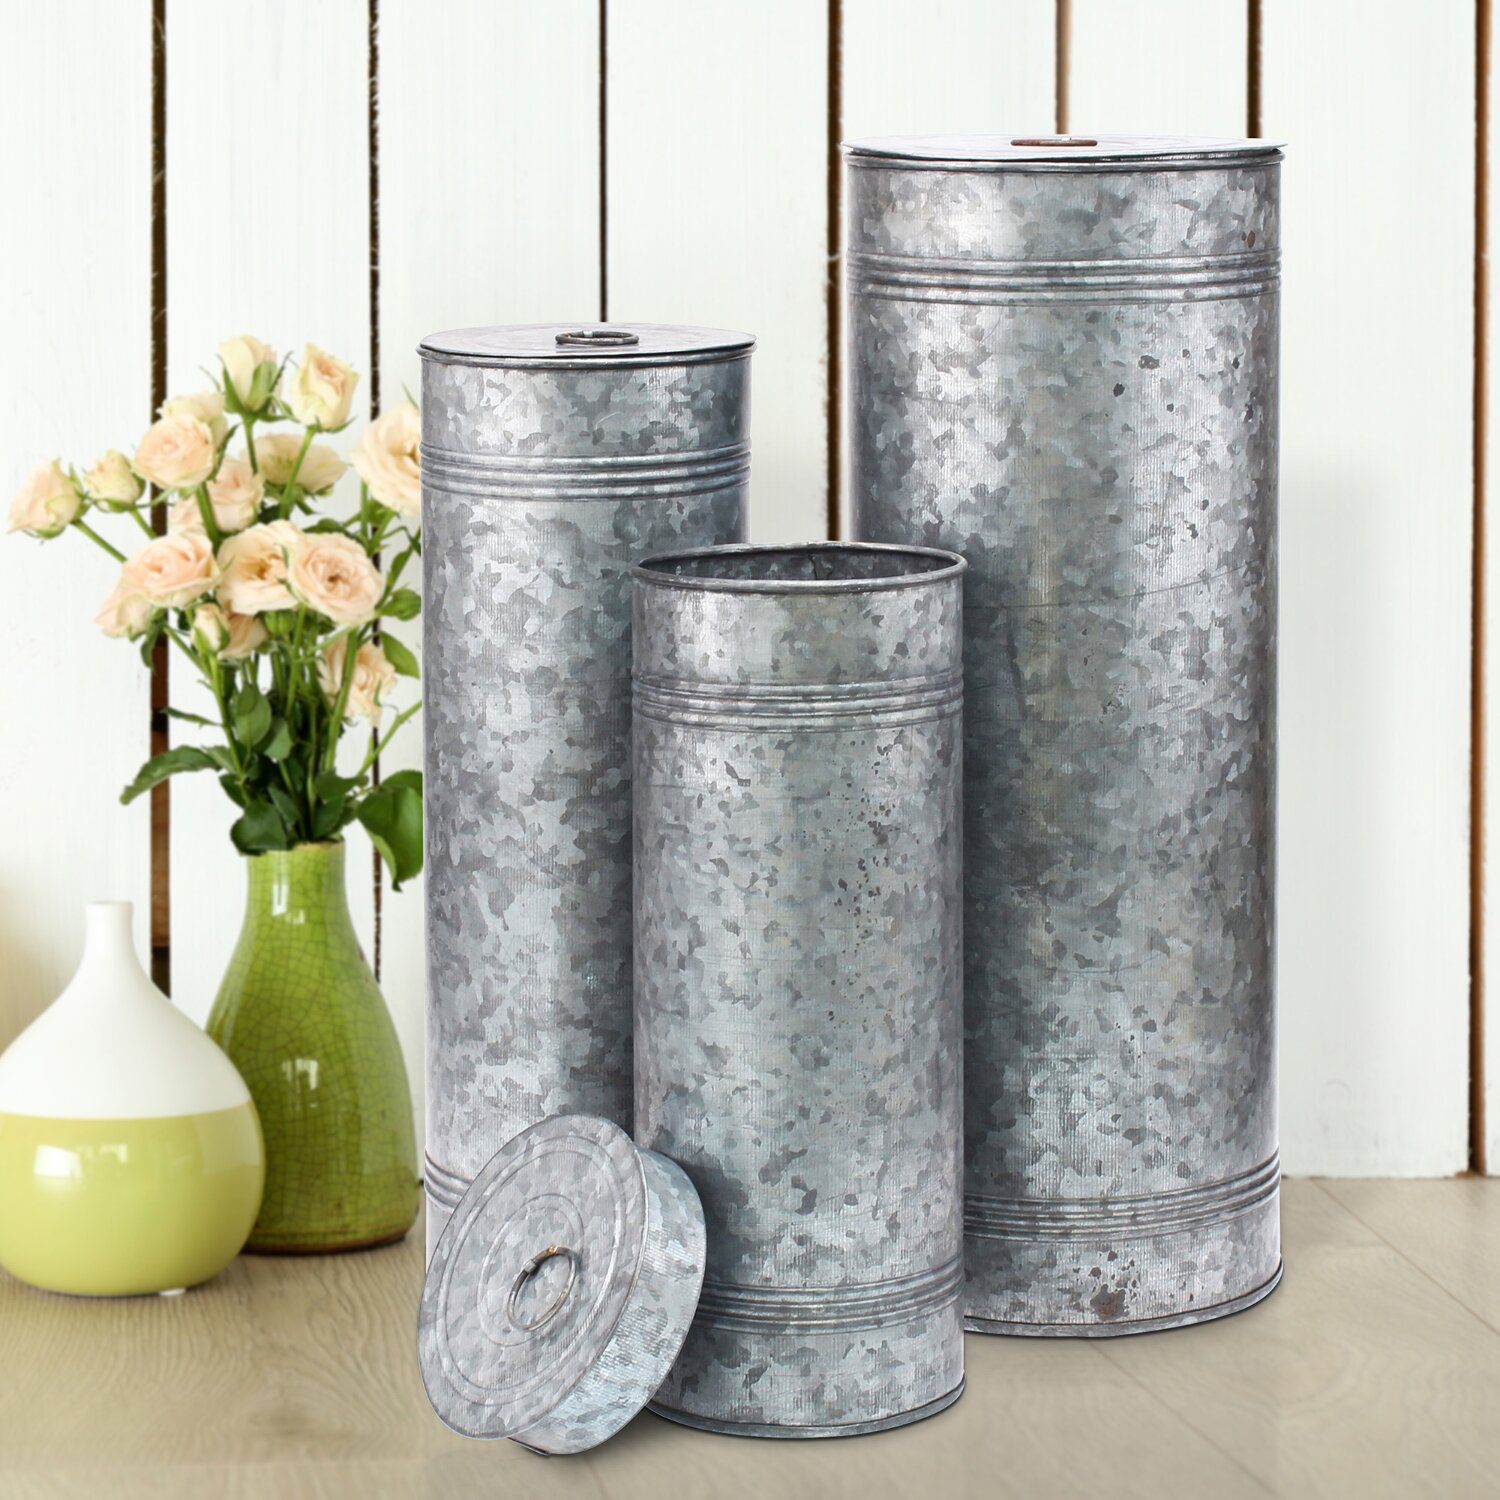 galvanized tin home decor - best home decor